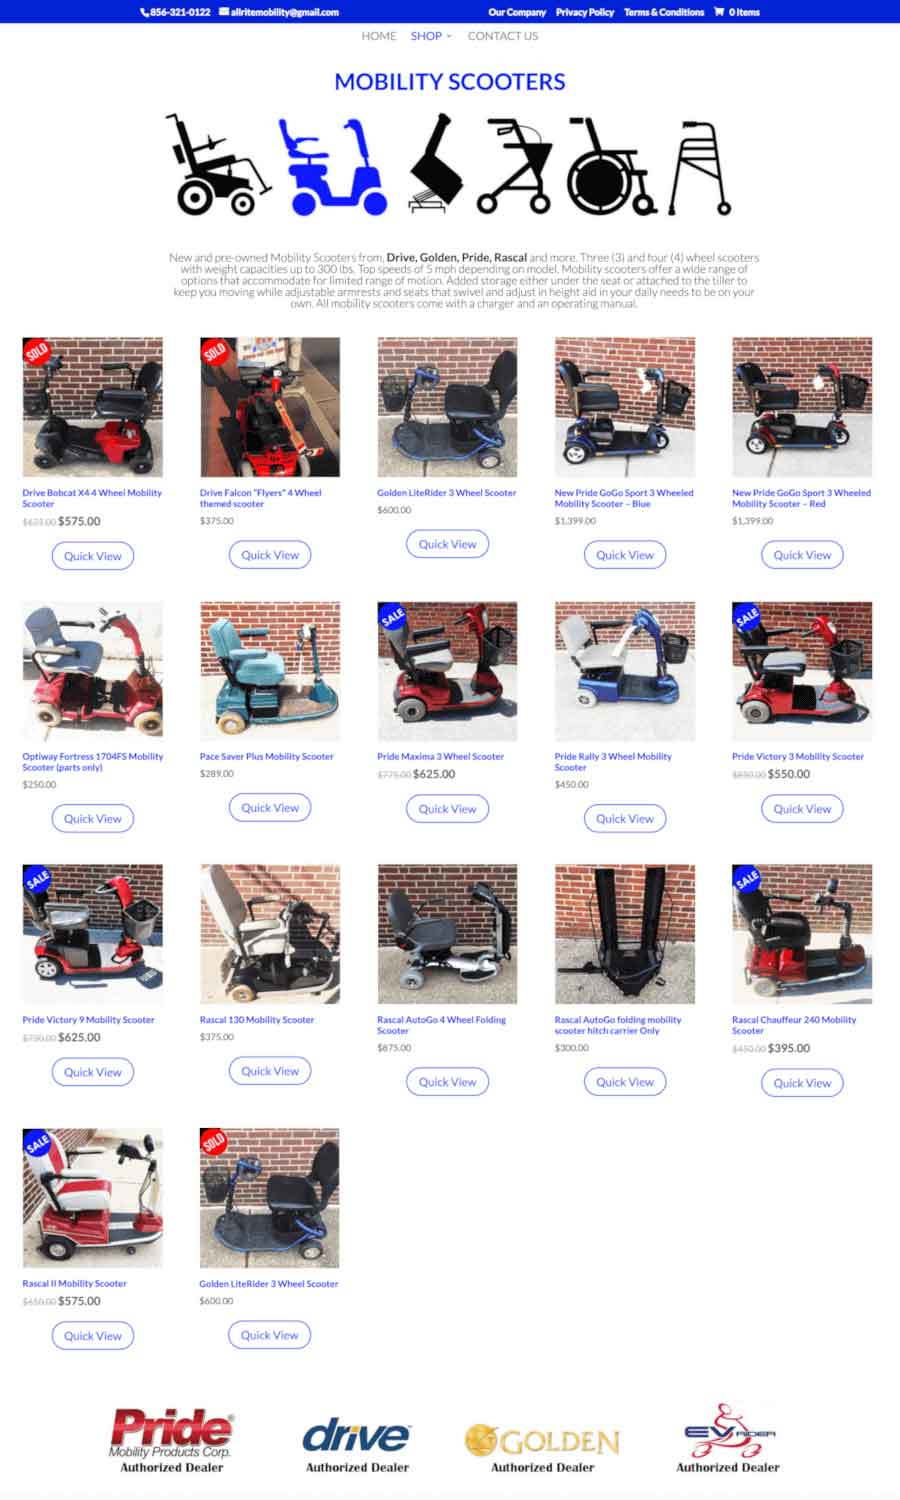 Allrite Mobility: Mobility Scooter Shop Page